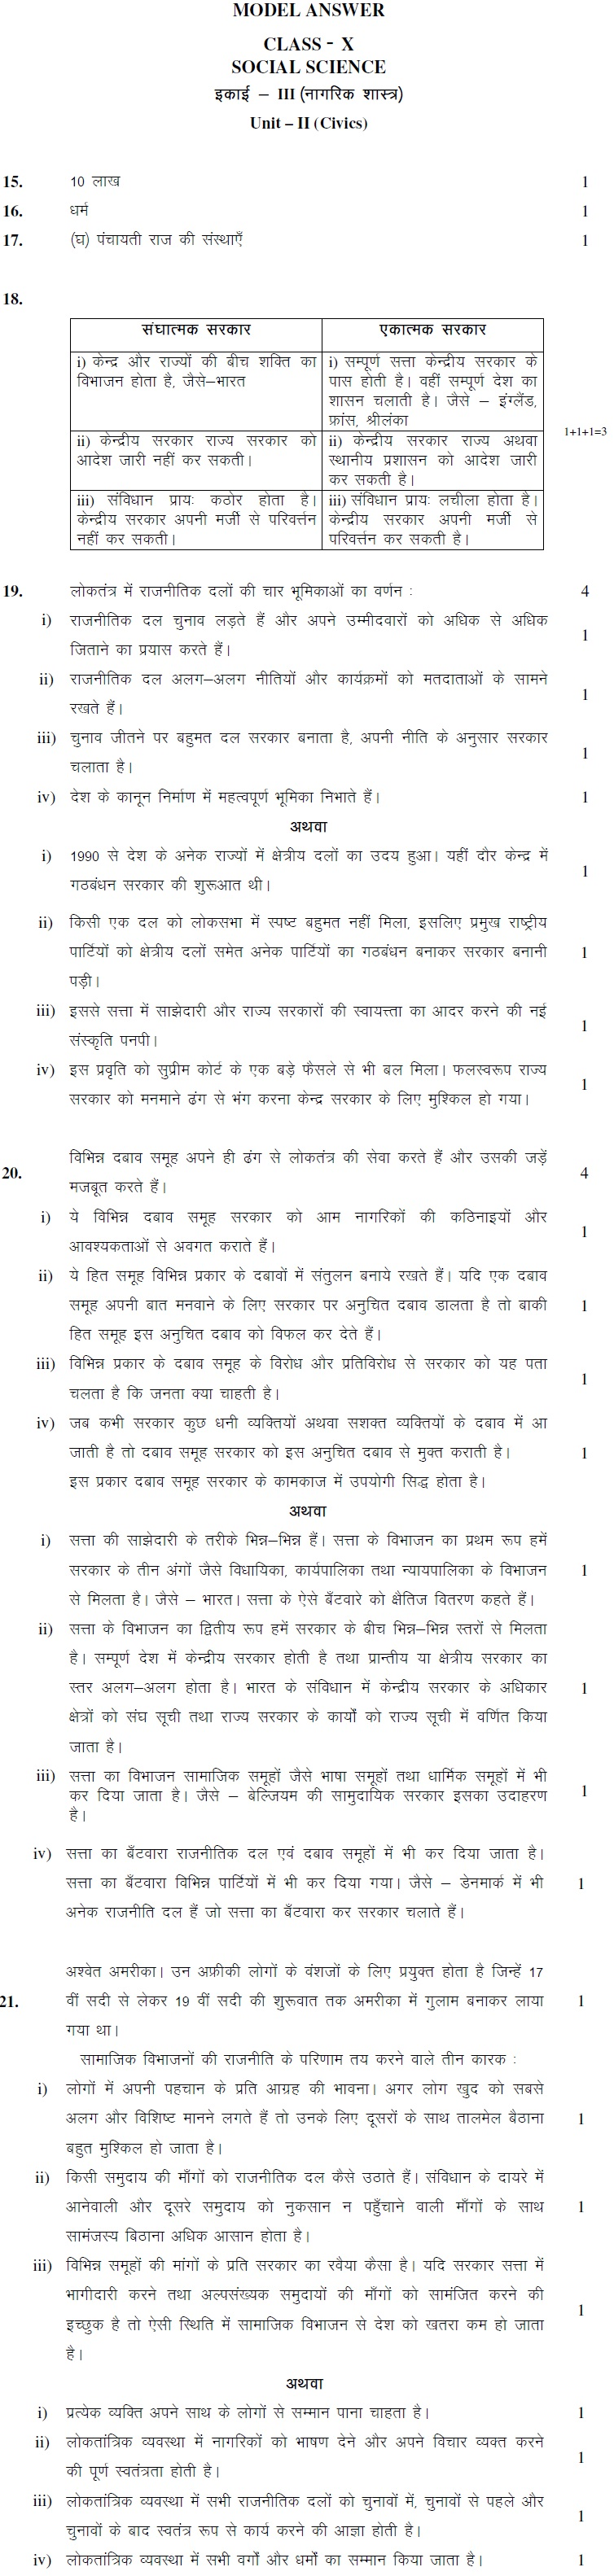 essay on jharkhand An essay on jharkhand academic council creative writing society kcl how will you write university research papers - best essay writing service for all students.